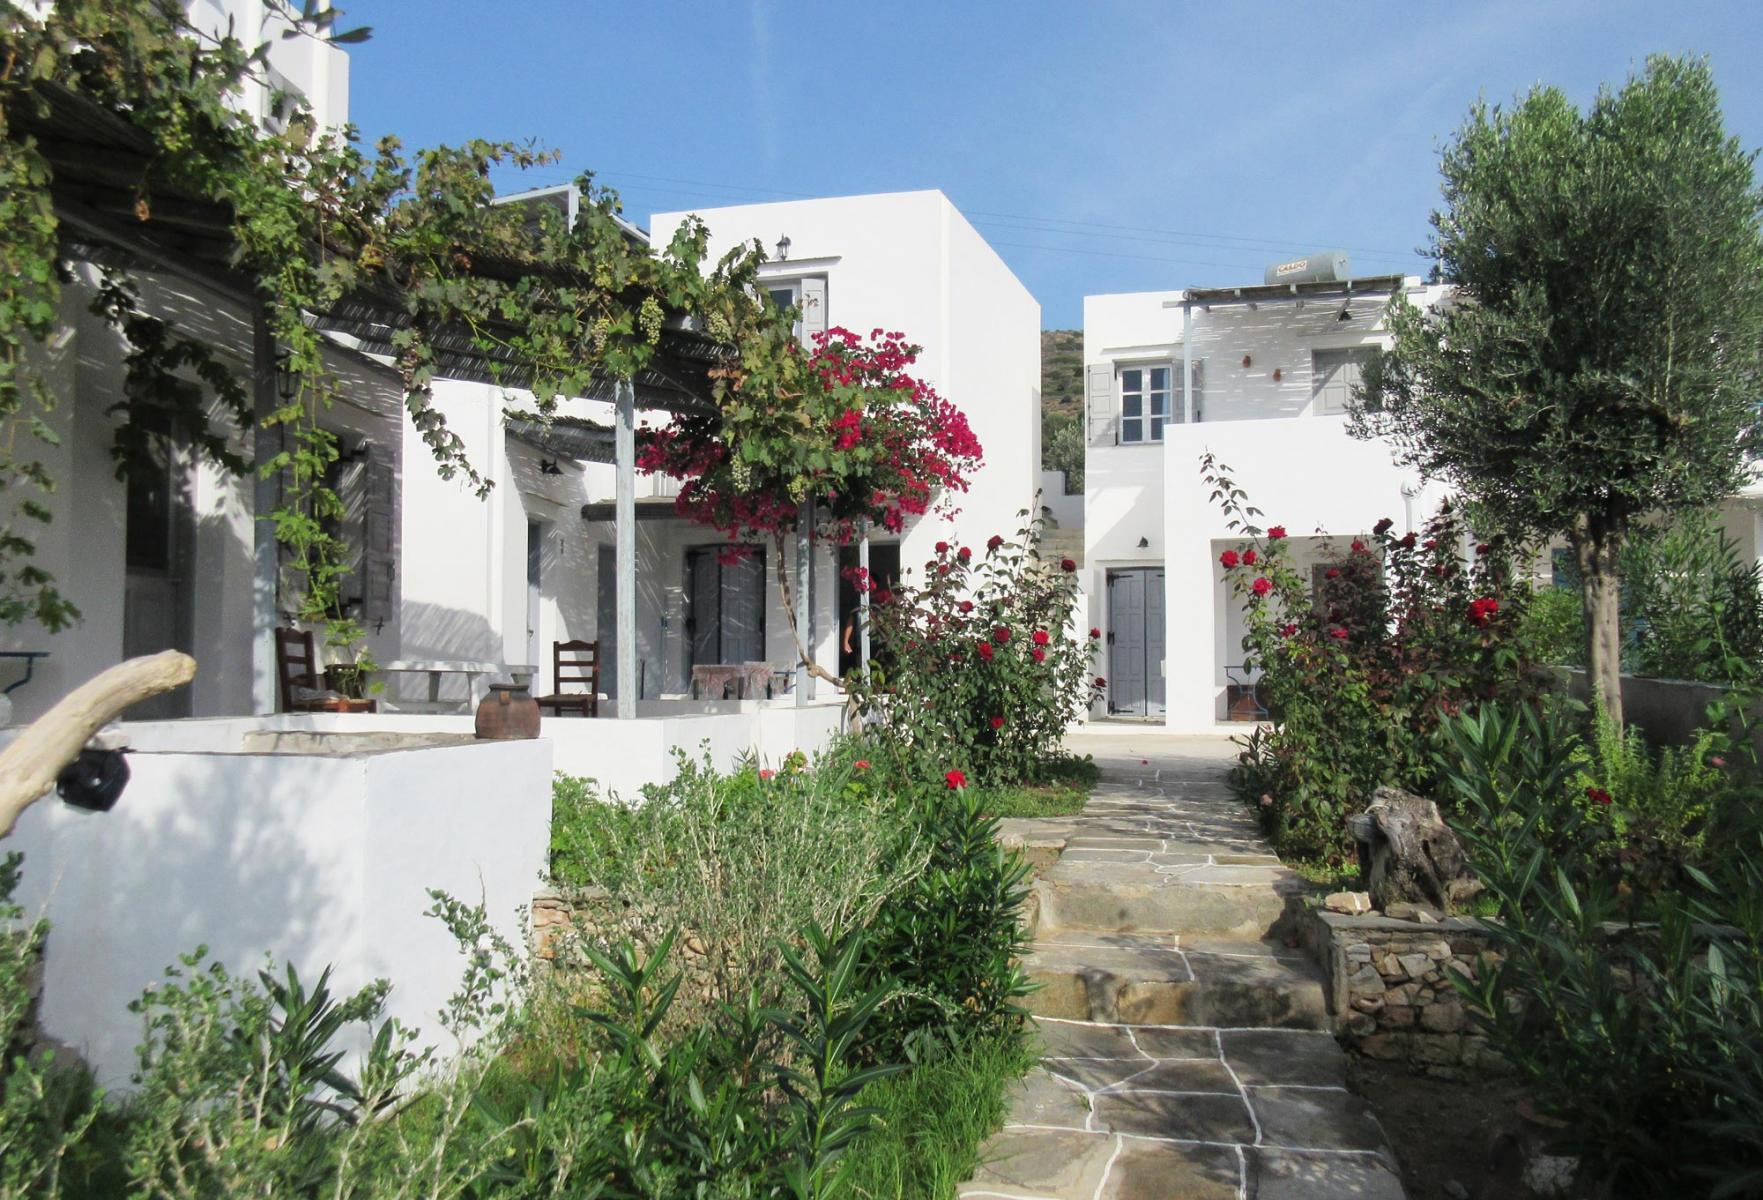 MARINOS XANTHAKIS STUDIOS IN  Vathy - Sifnos, Cyclades islands